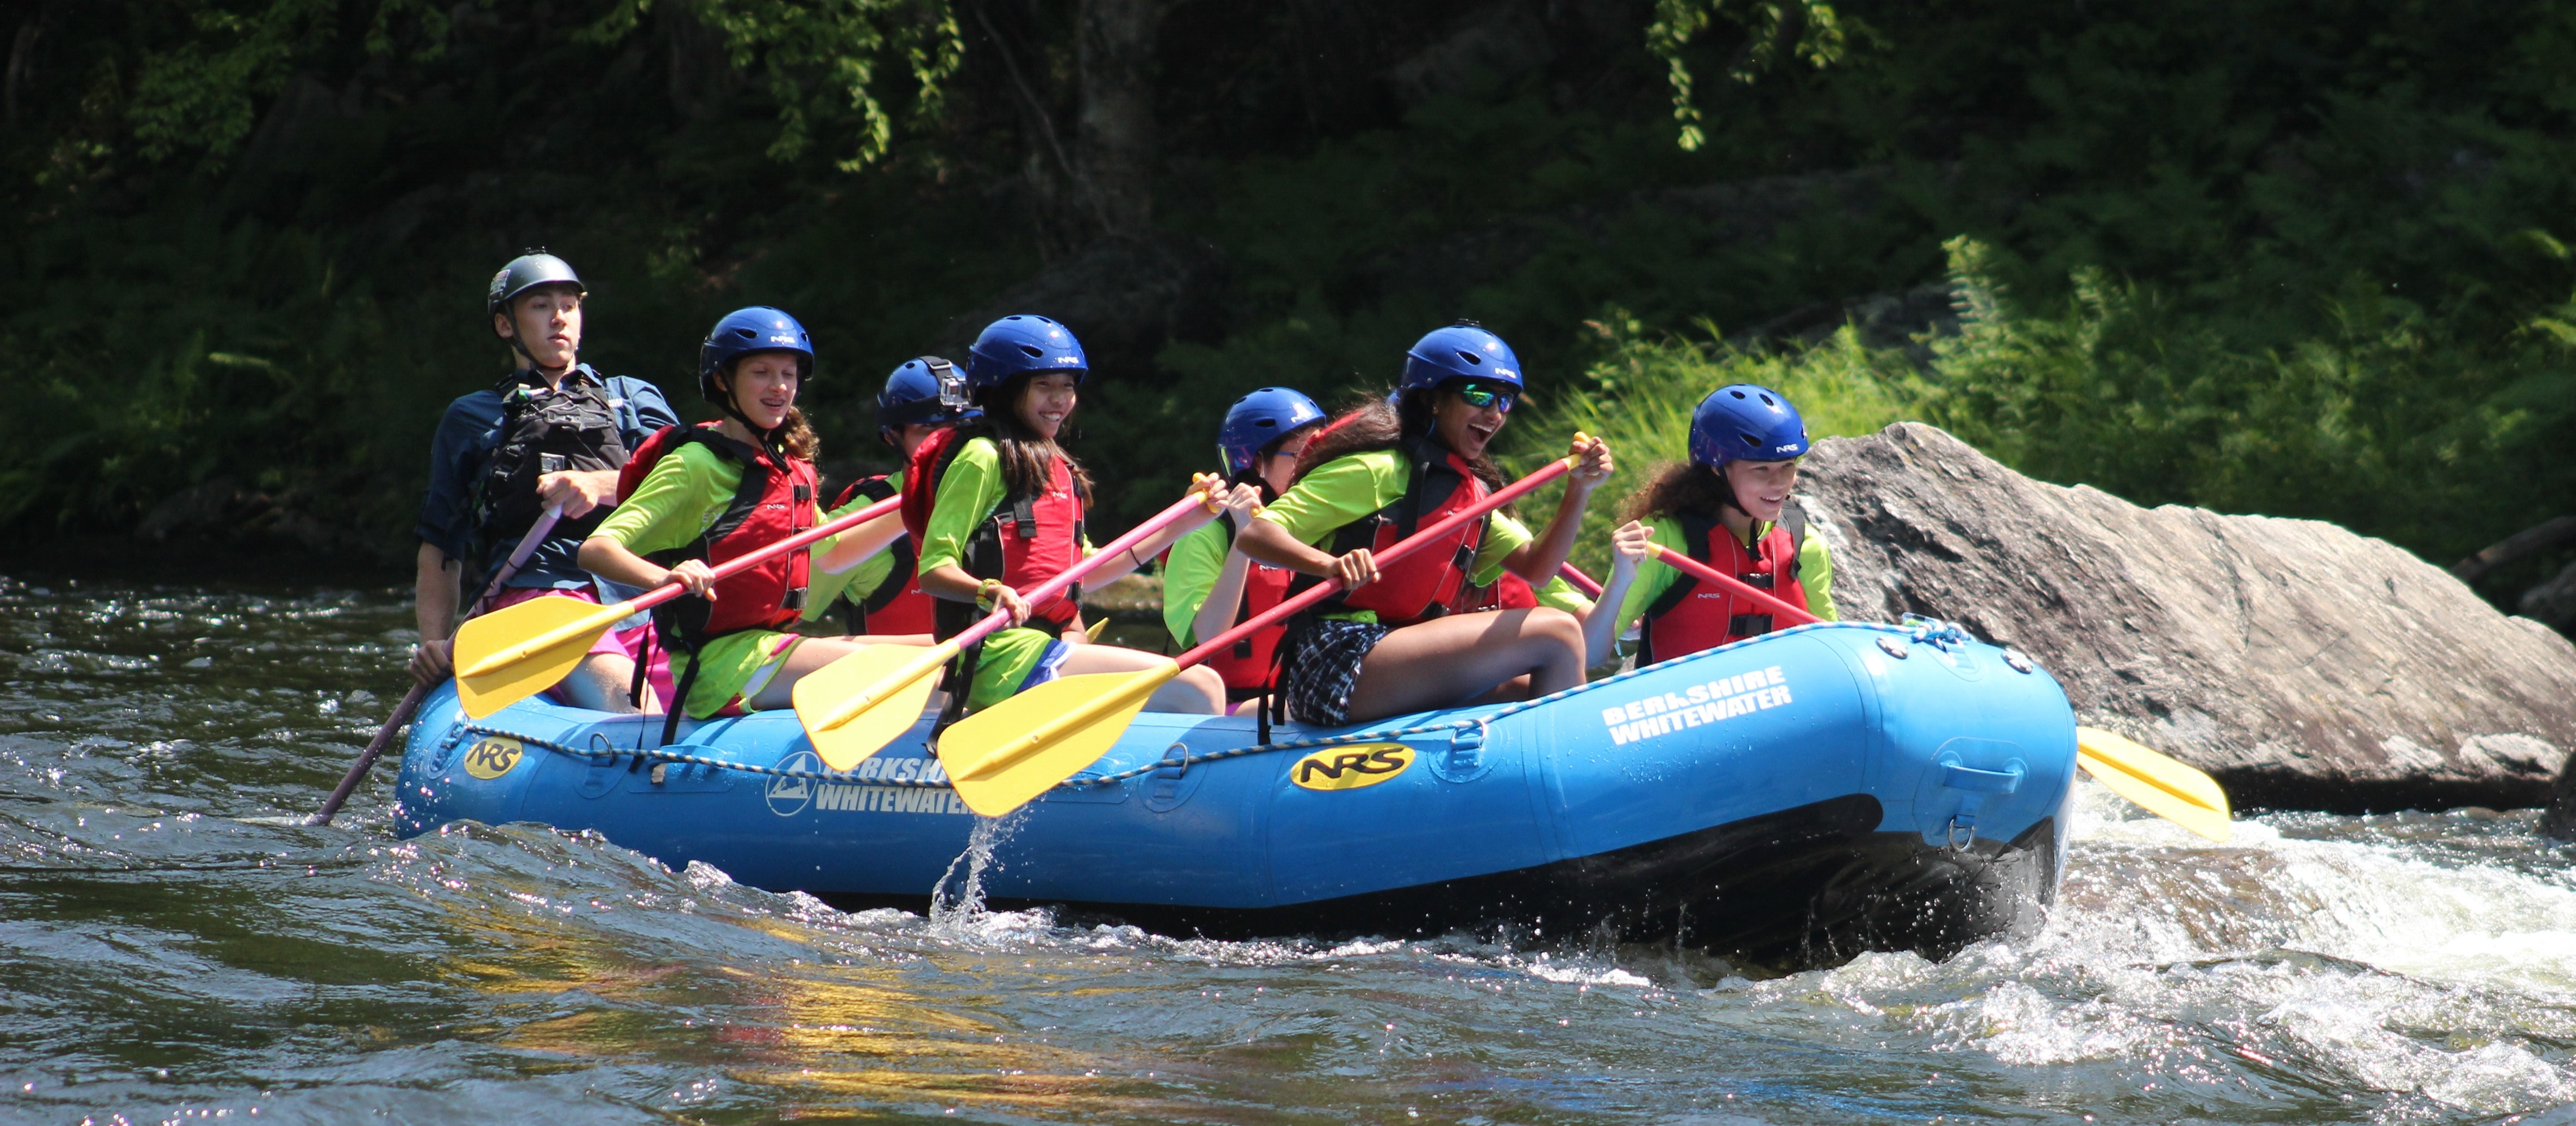 It was a great day to get off campus and cool off rafting down the Deerfield River.